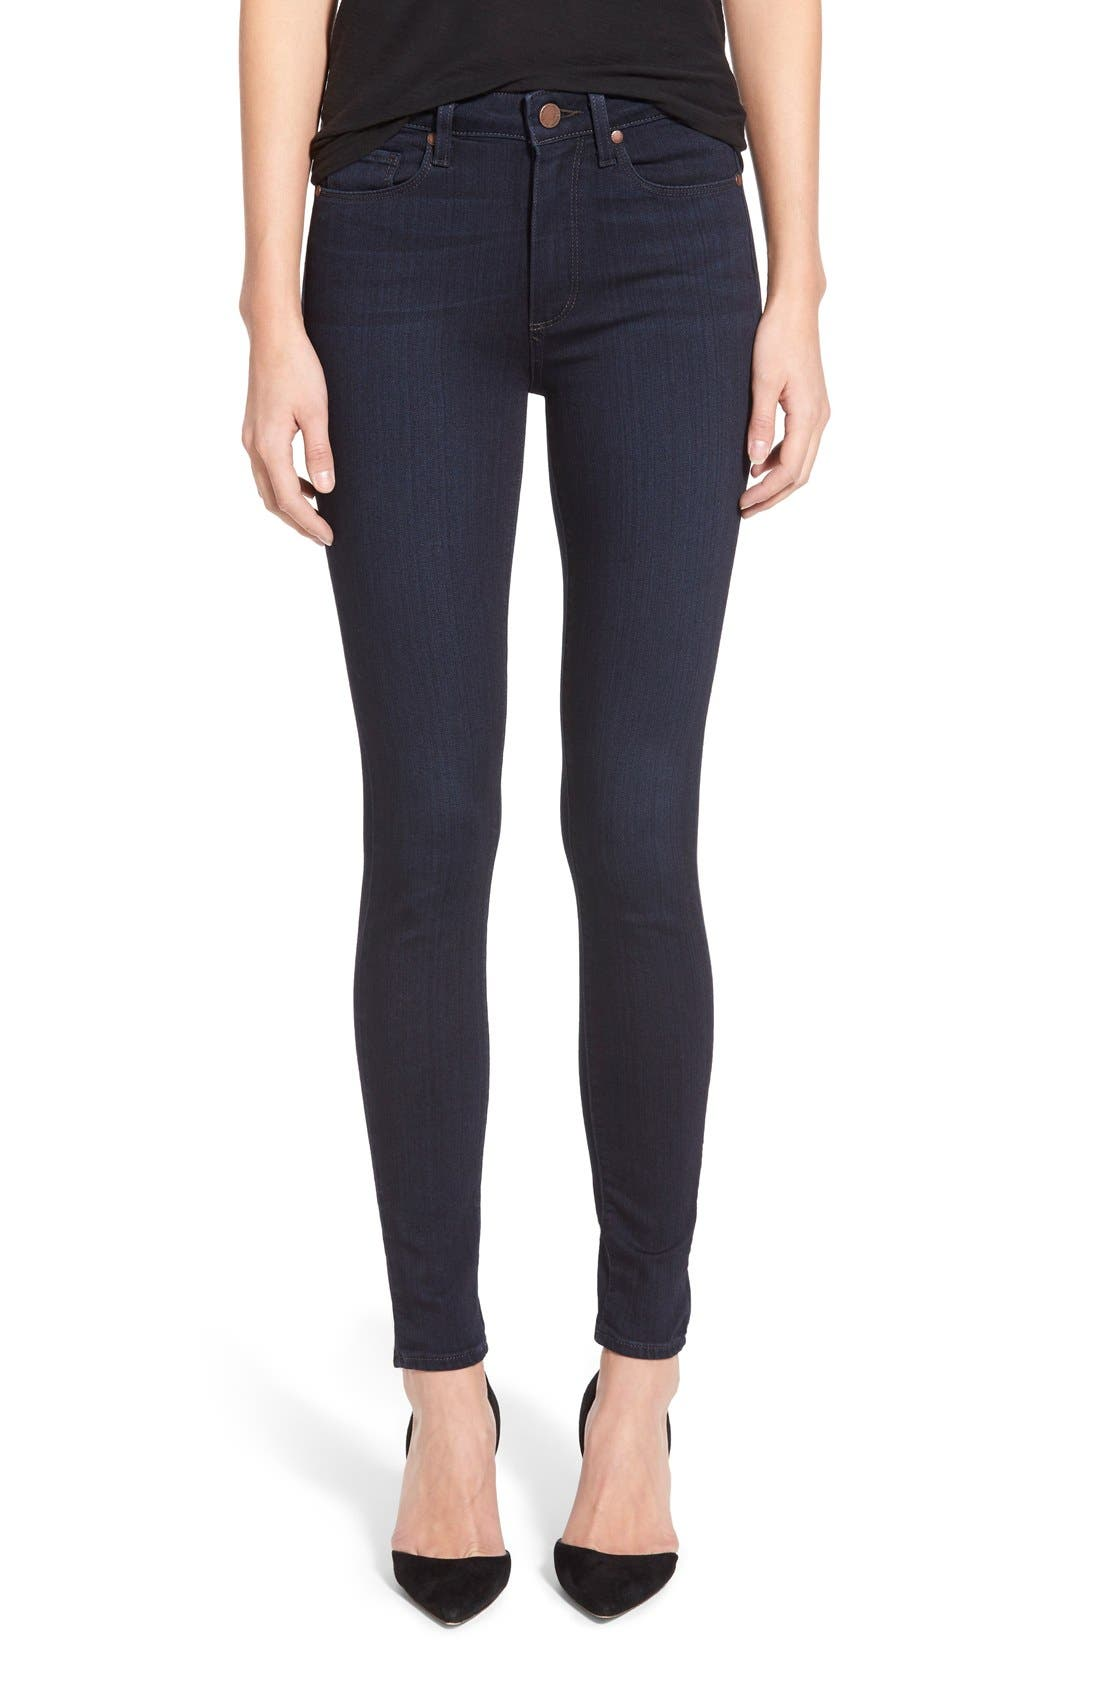 Alternate Image 1 Selected - Paige Denim 'Hoxton' High Rise Ultra Skinny Jeans (Cambria)